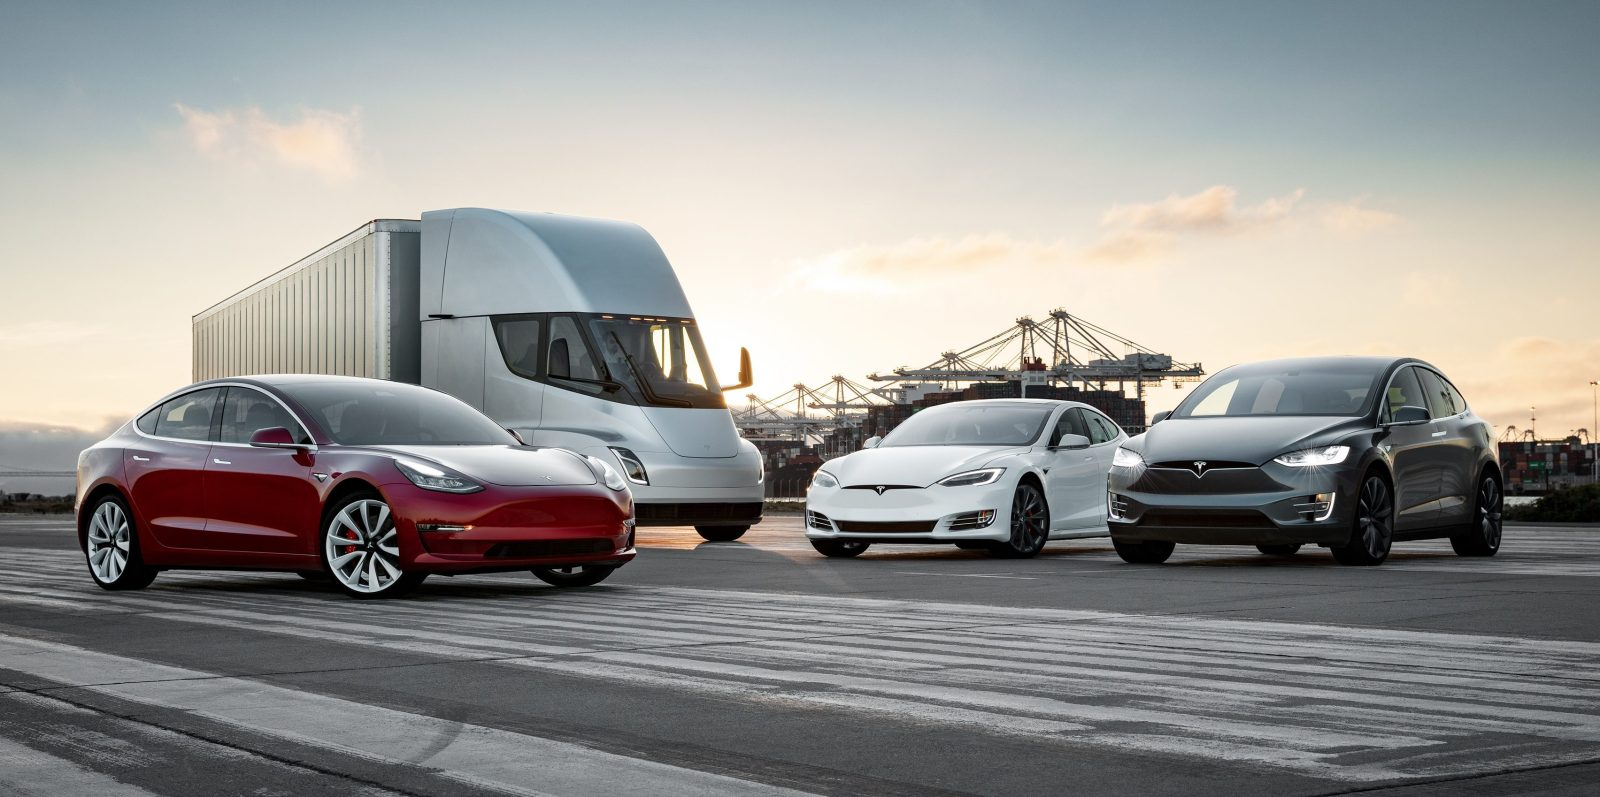 Tesla releases cool 'family photo' with all its vehicles from semi truck to Model 3